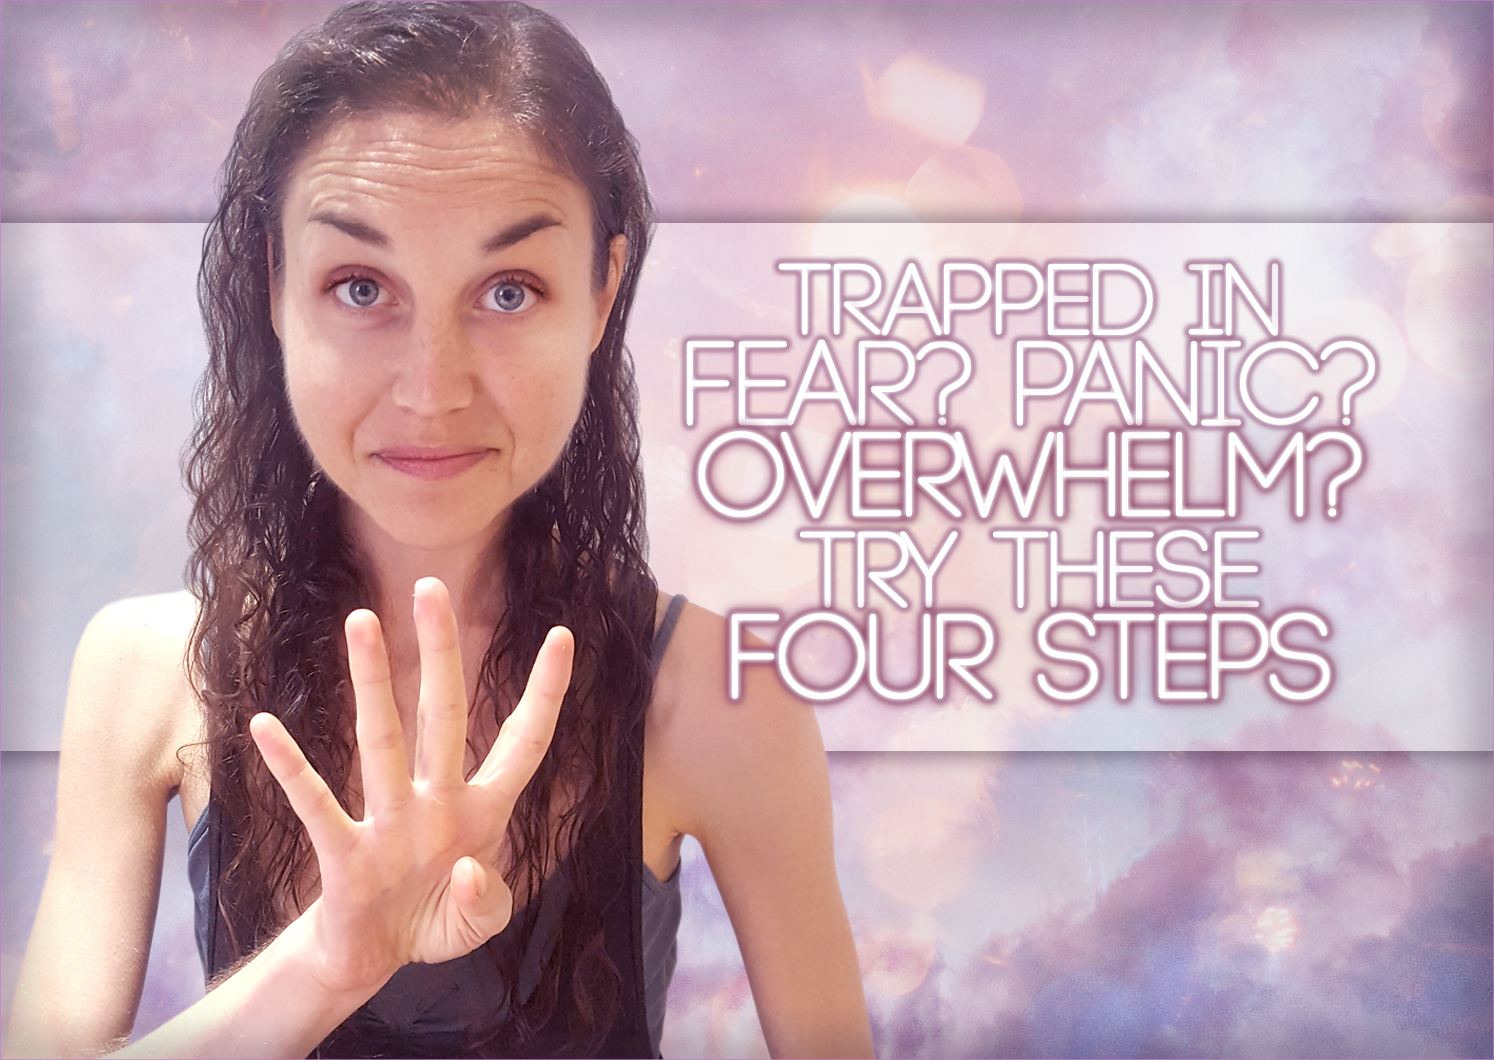 Trapped In Fear? Panic? Overwhelm? Try These Four Steps